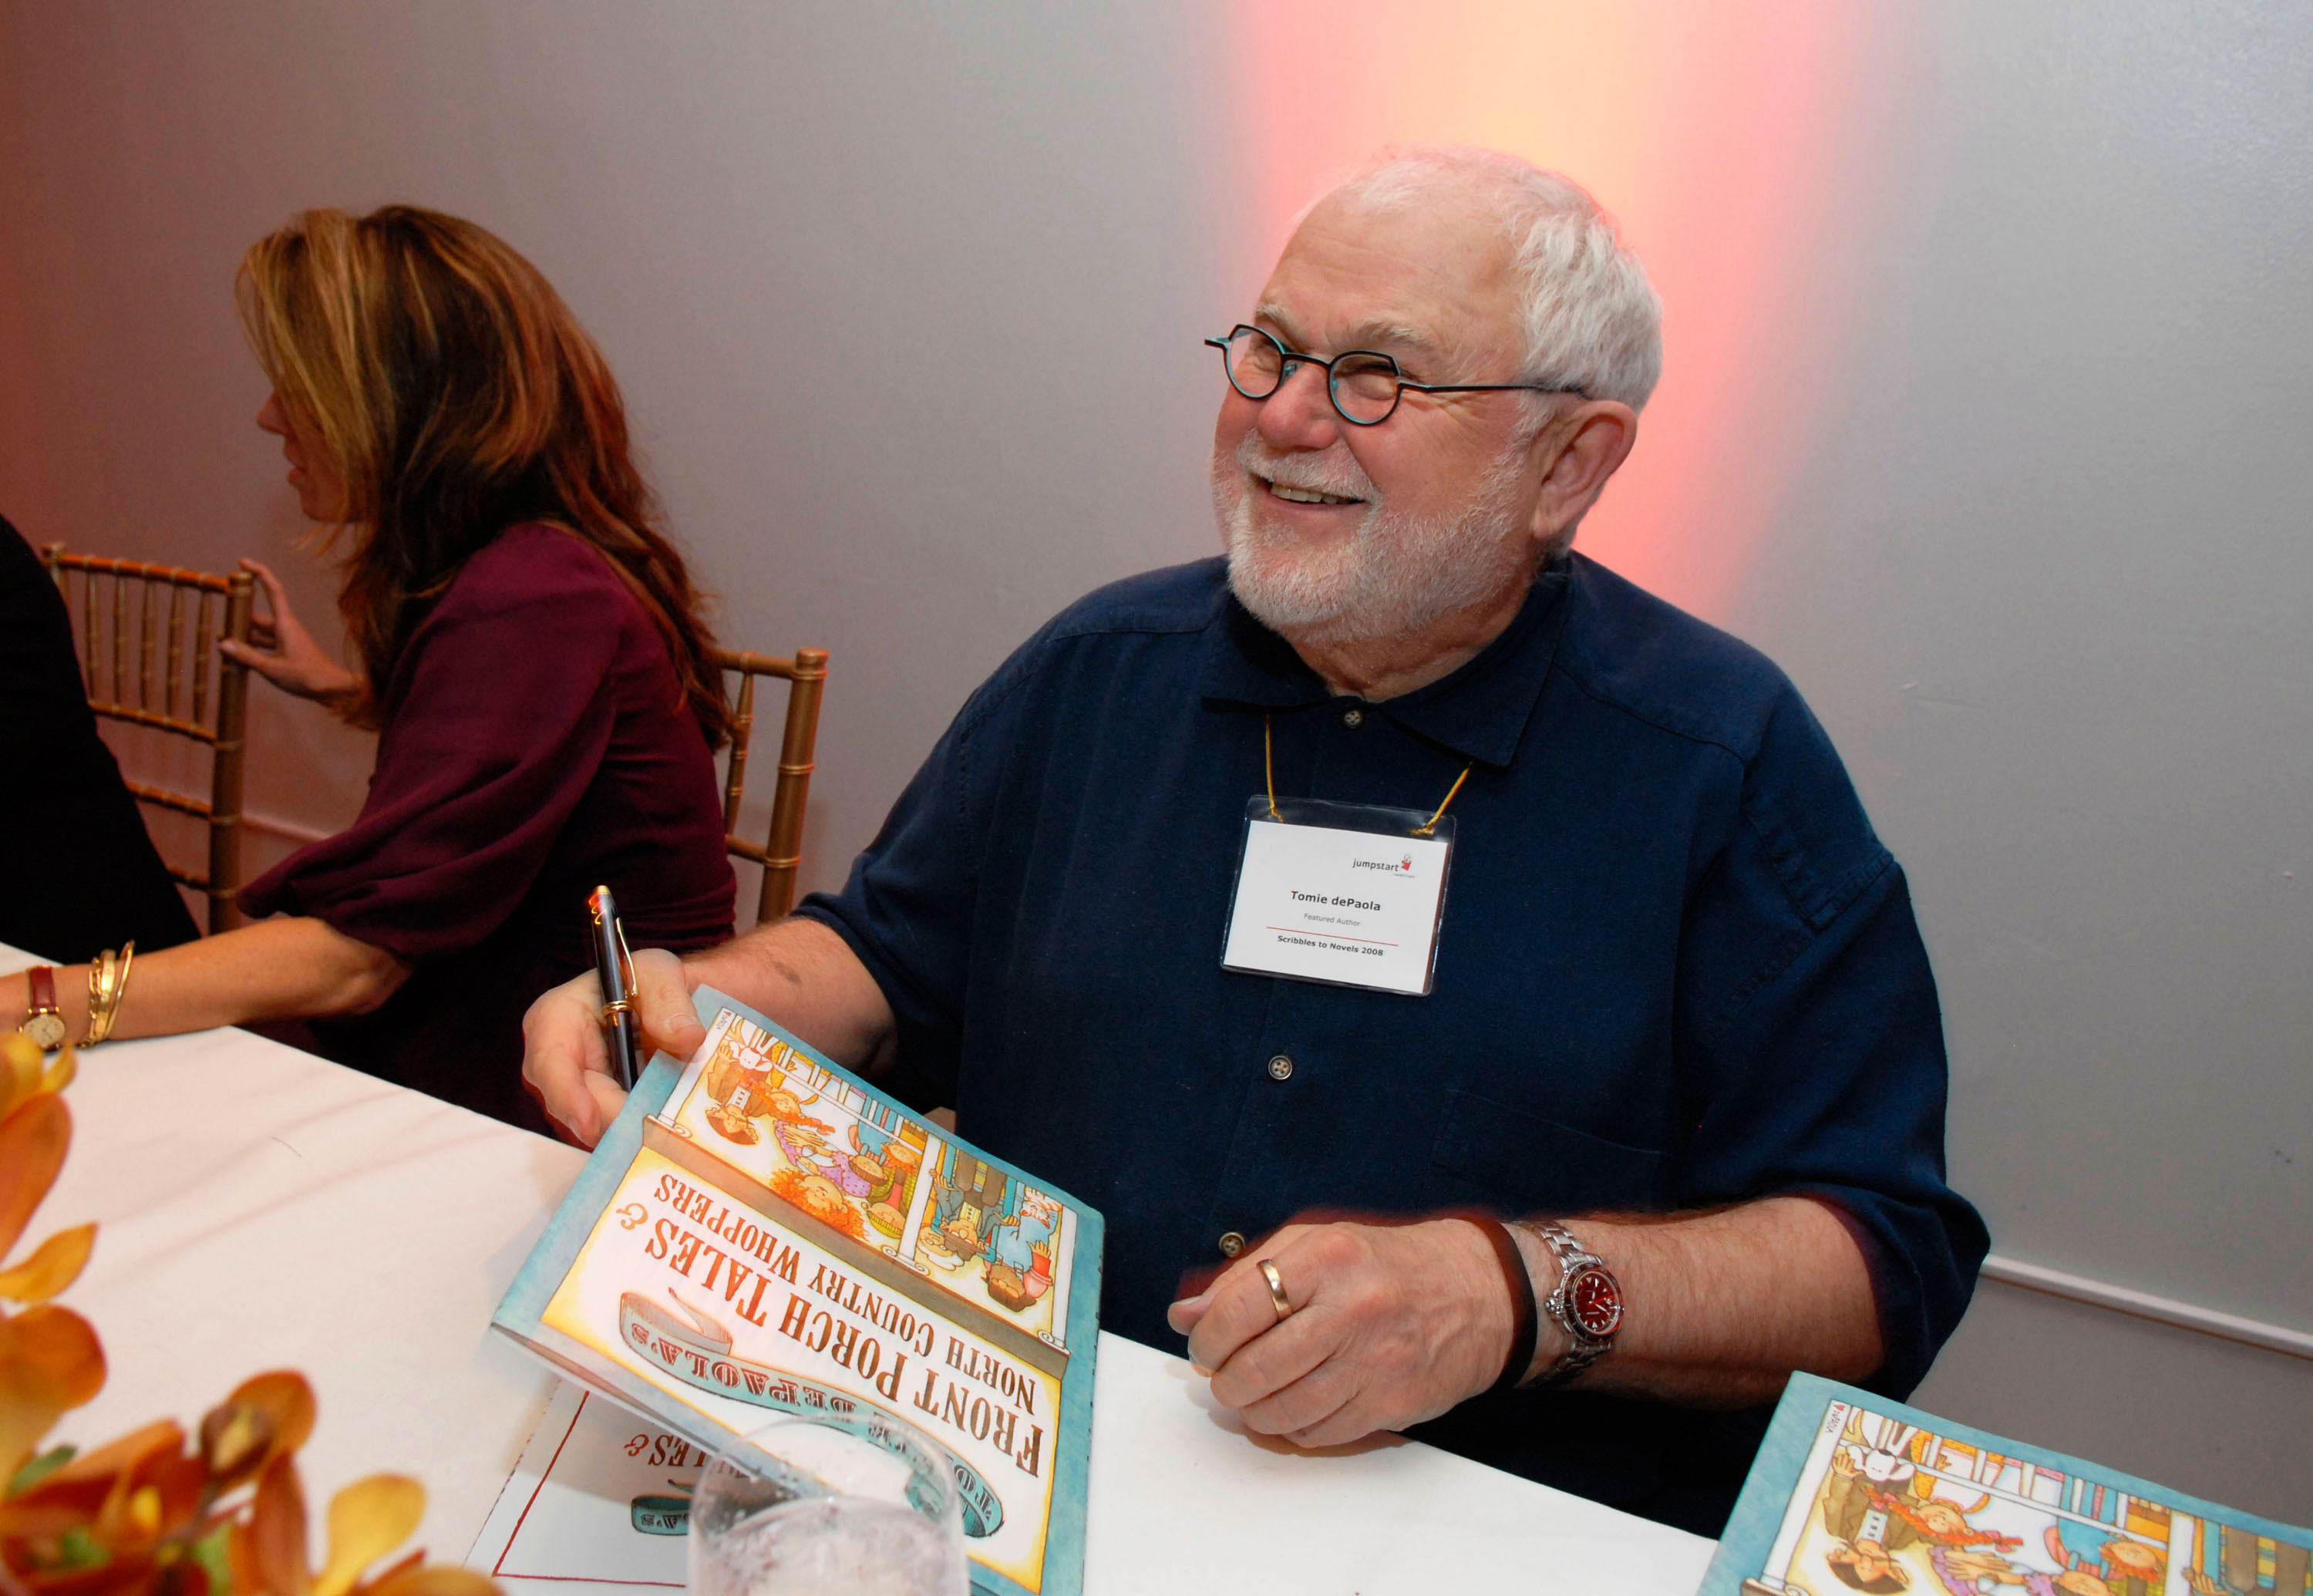 Children's author and illustrator Tomie dePaola has died